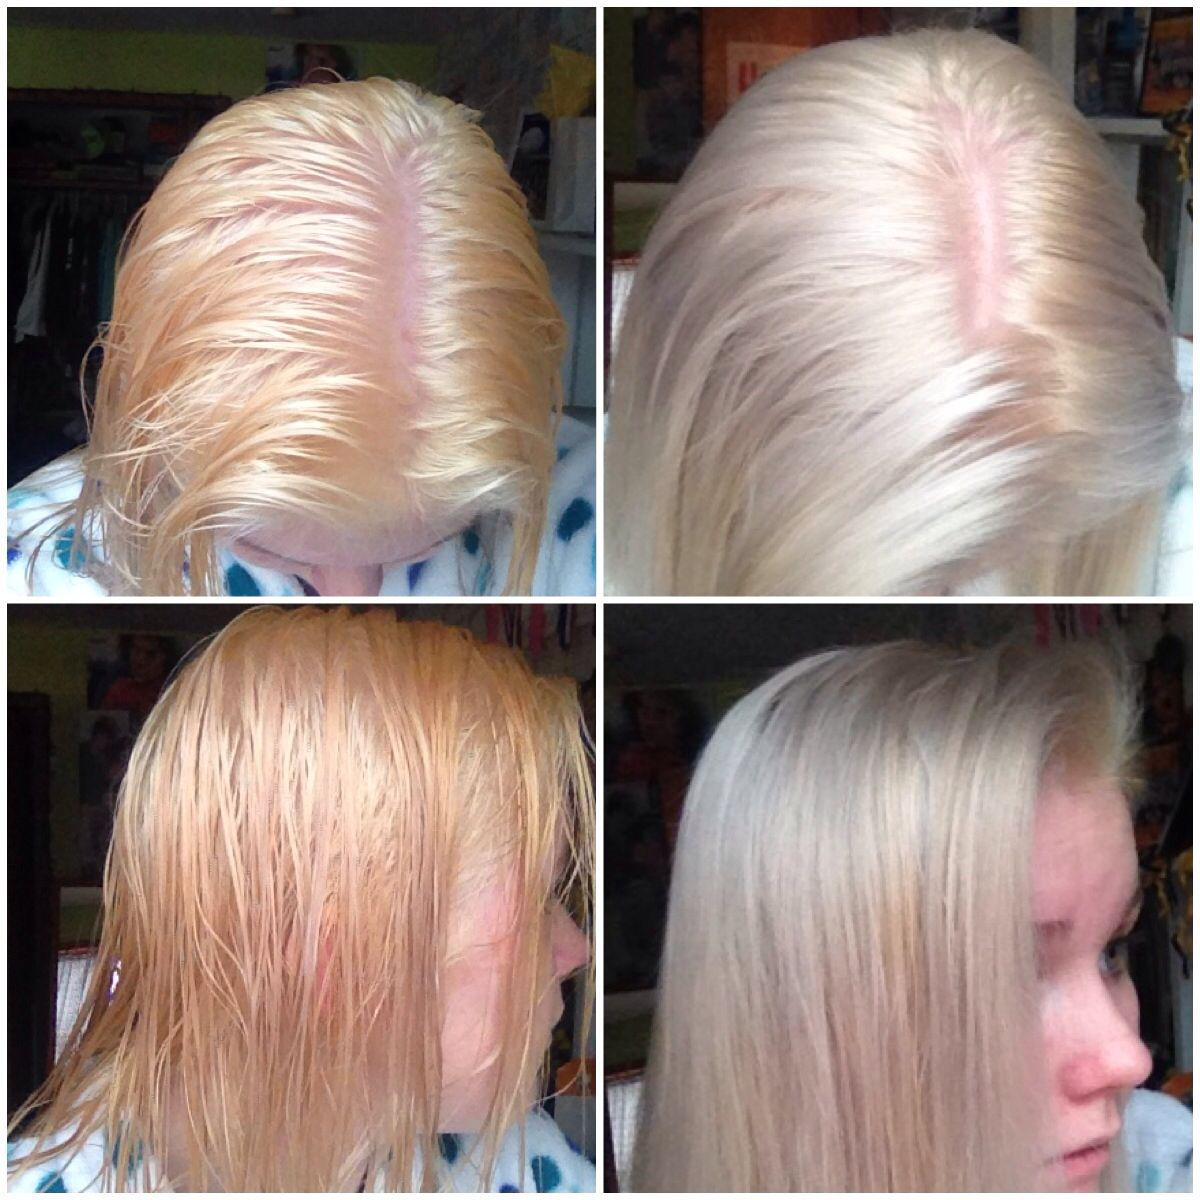 I Bleached My Hair From Blonde To This Pale Orange Color And Then Mixed Wella T18 Toner And 20 Vol Devel Blonde Hair With Roots Dyed Blonde Hair Bleached Hair